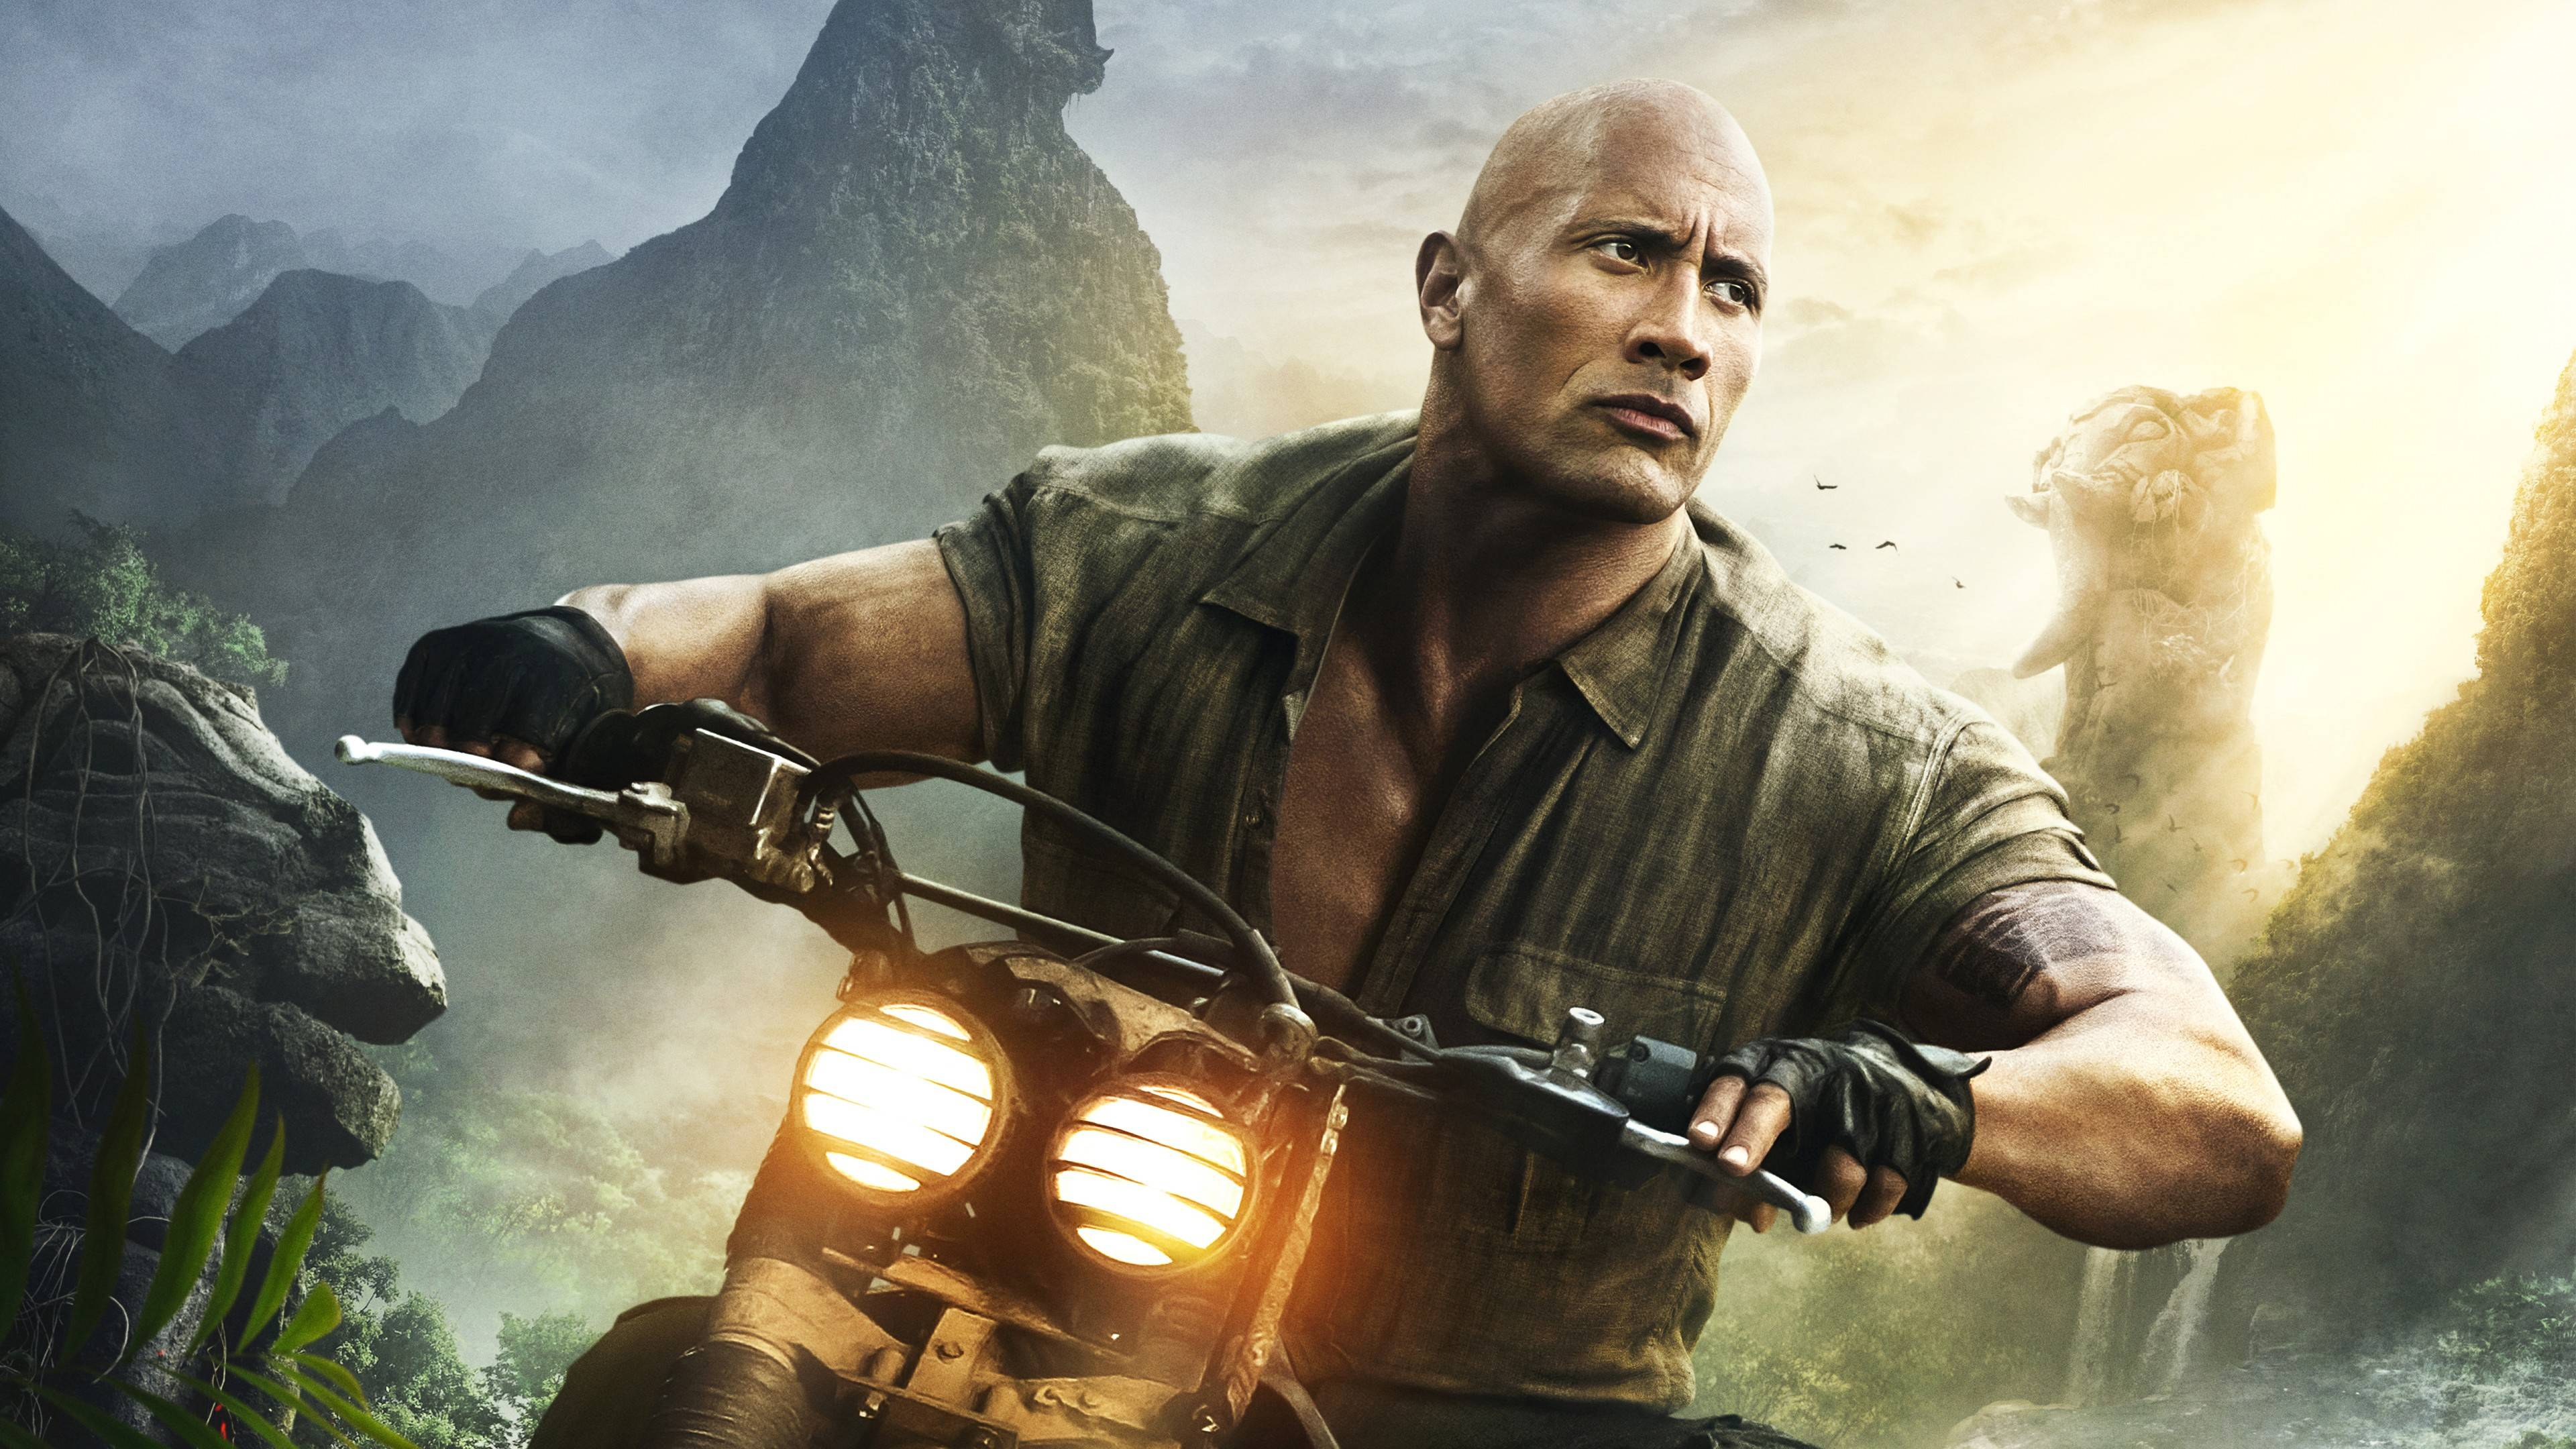 Dwayne Johnson in Jumanji Welcome to the Jungle HD Wallpapers